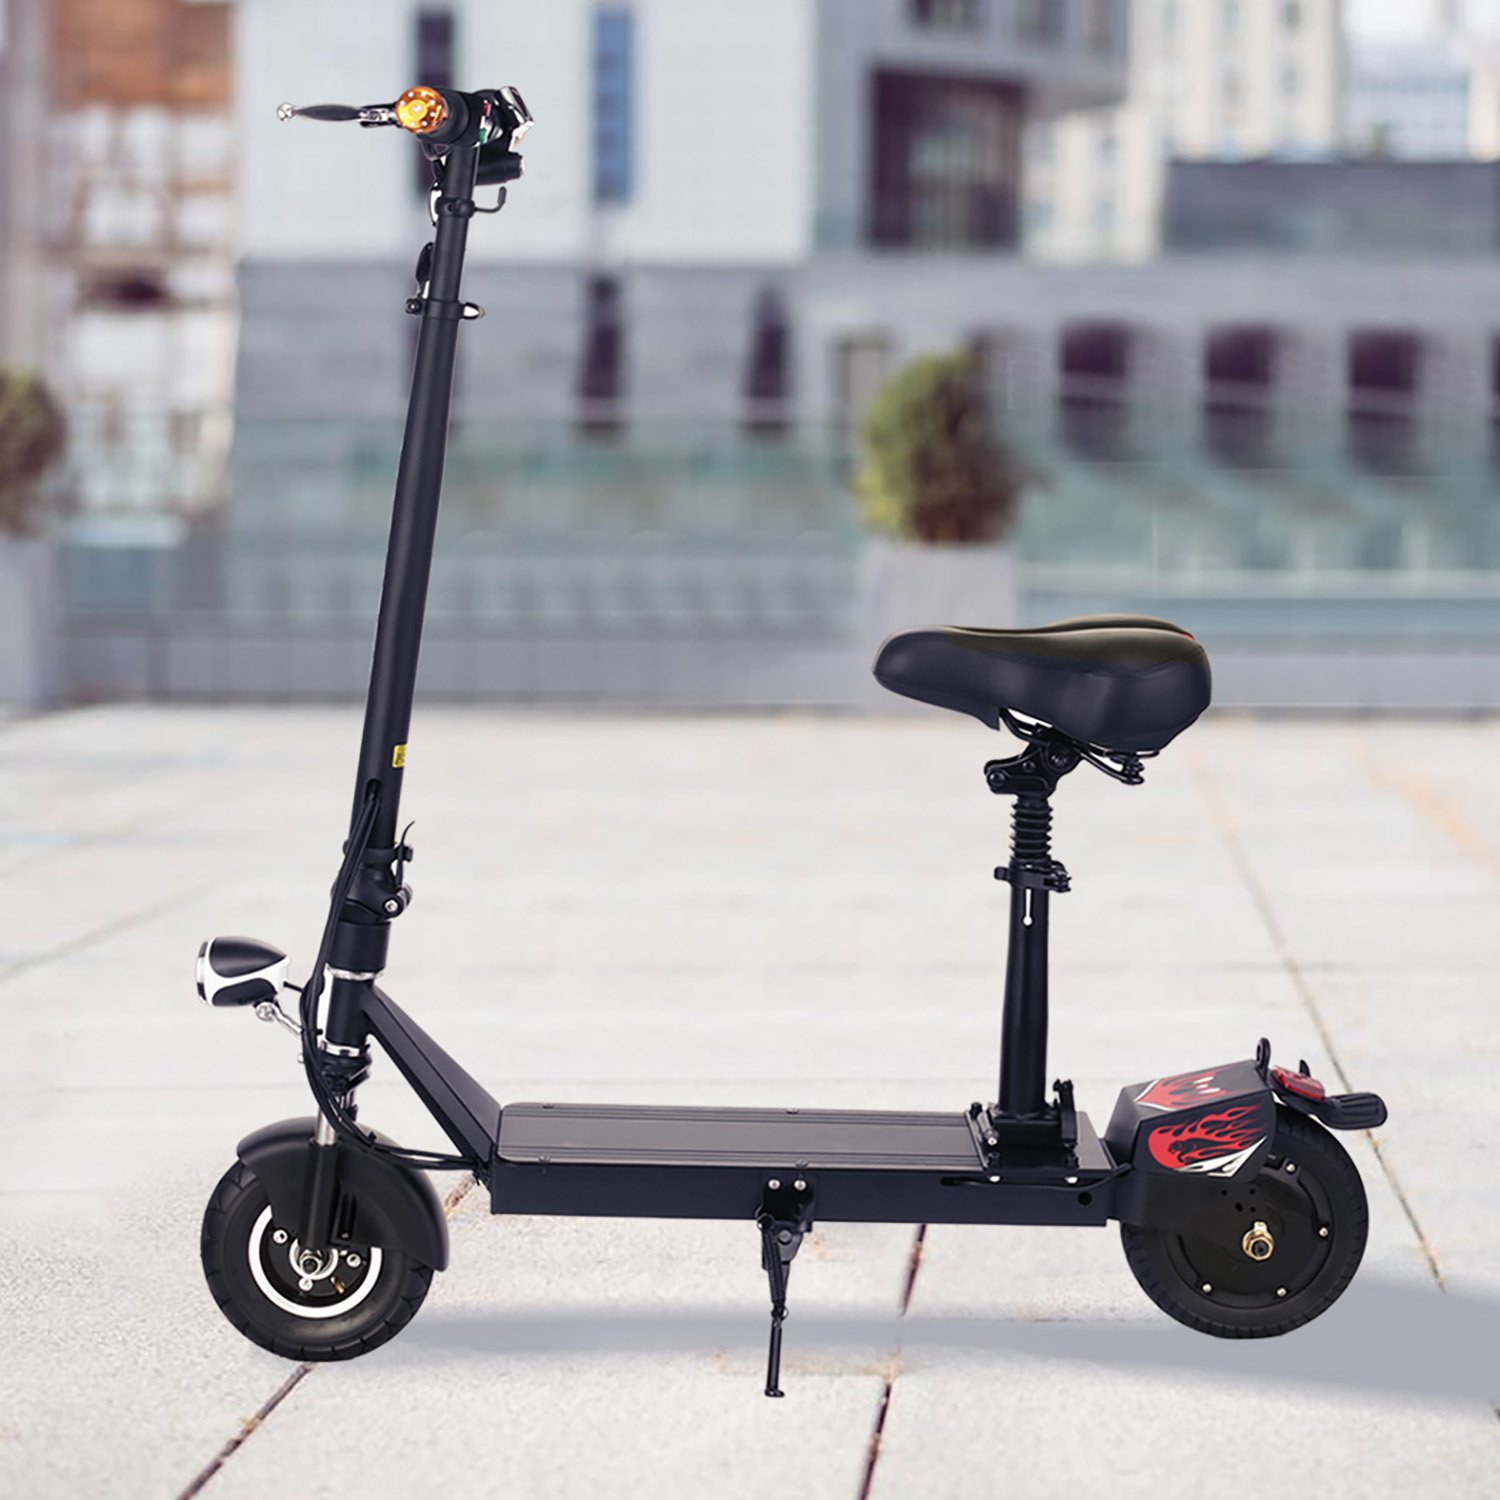 Ancheer Electric Scooters for Adults with Seat and Dual Suspension- Foldable Escooter for Women/Men Commuting with Key Start, LED Dispaly, Headlight and Fast Charge Battery